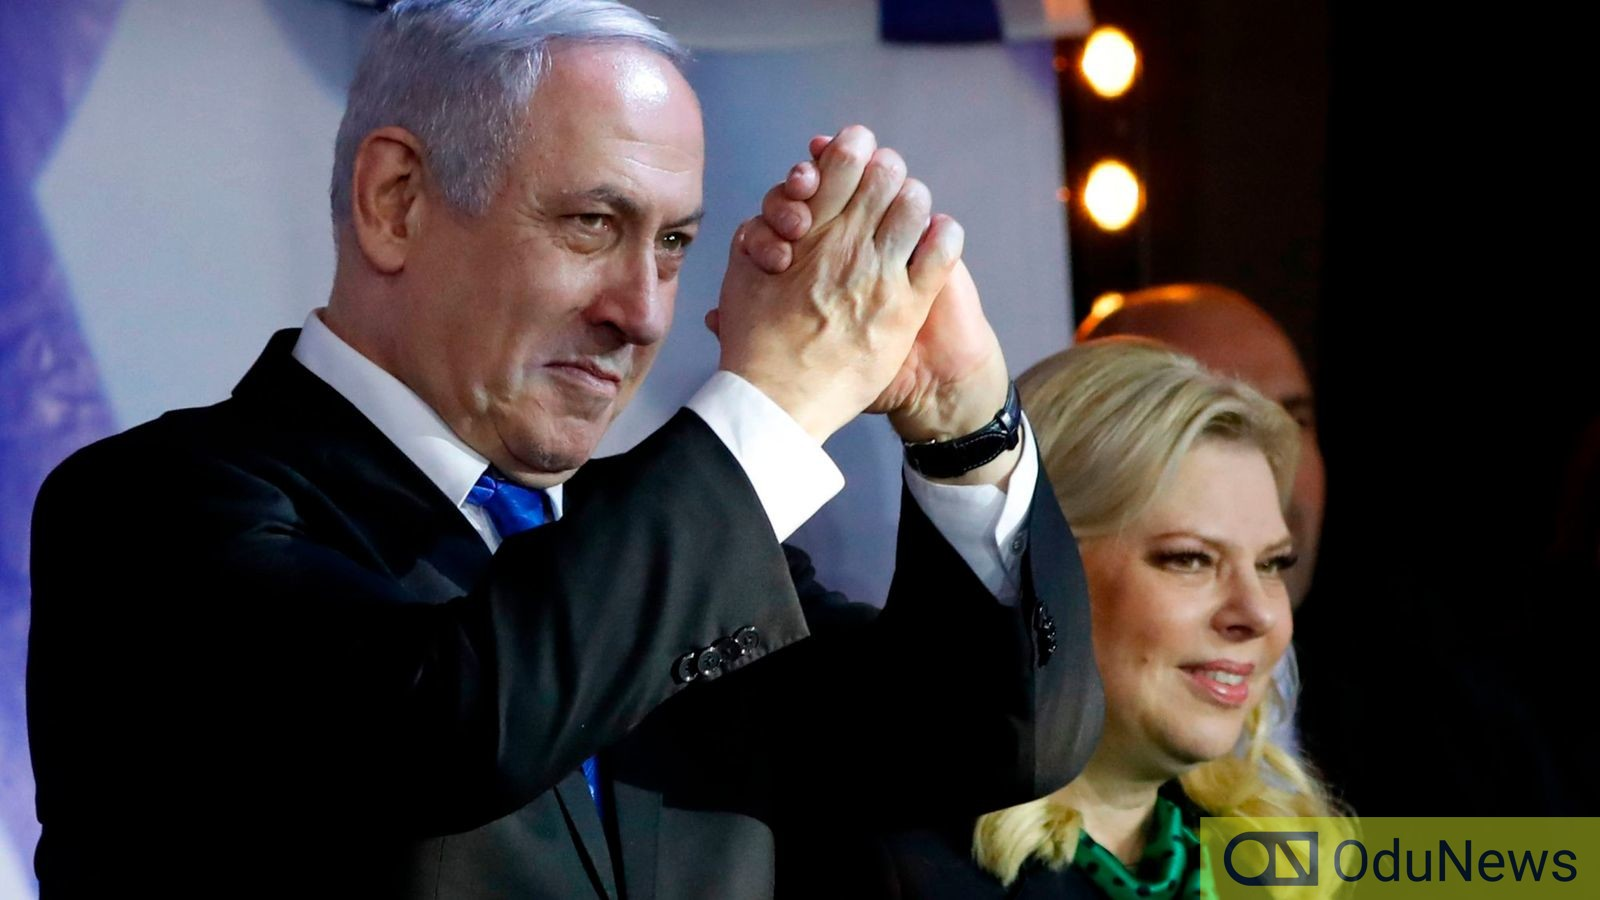 Benjamin Netanyahu thanking member of the party after he was declared winner